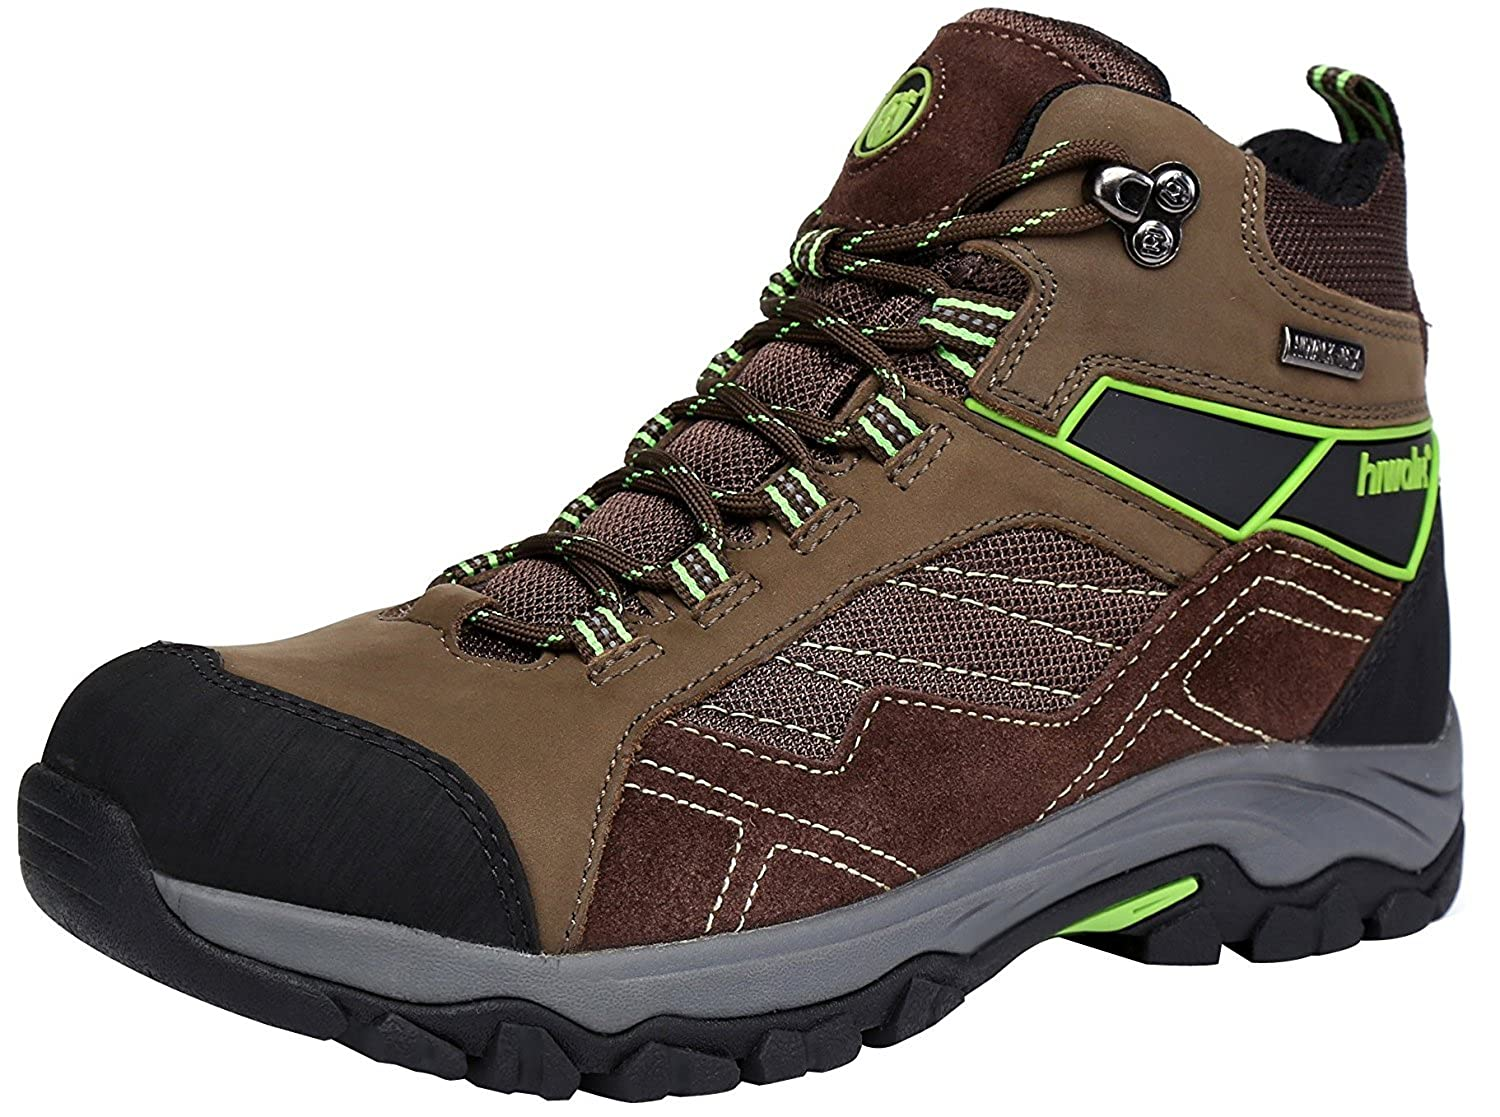 Hiwalk Men's Taurus Professional Waterproof Nubuck Suede Hiking Trekking Boot